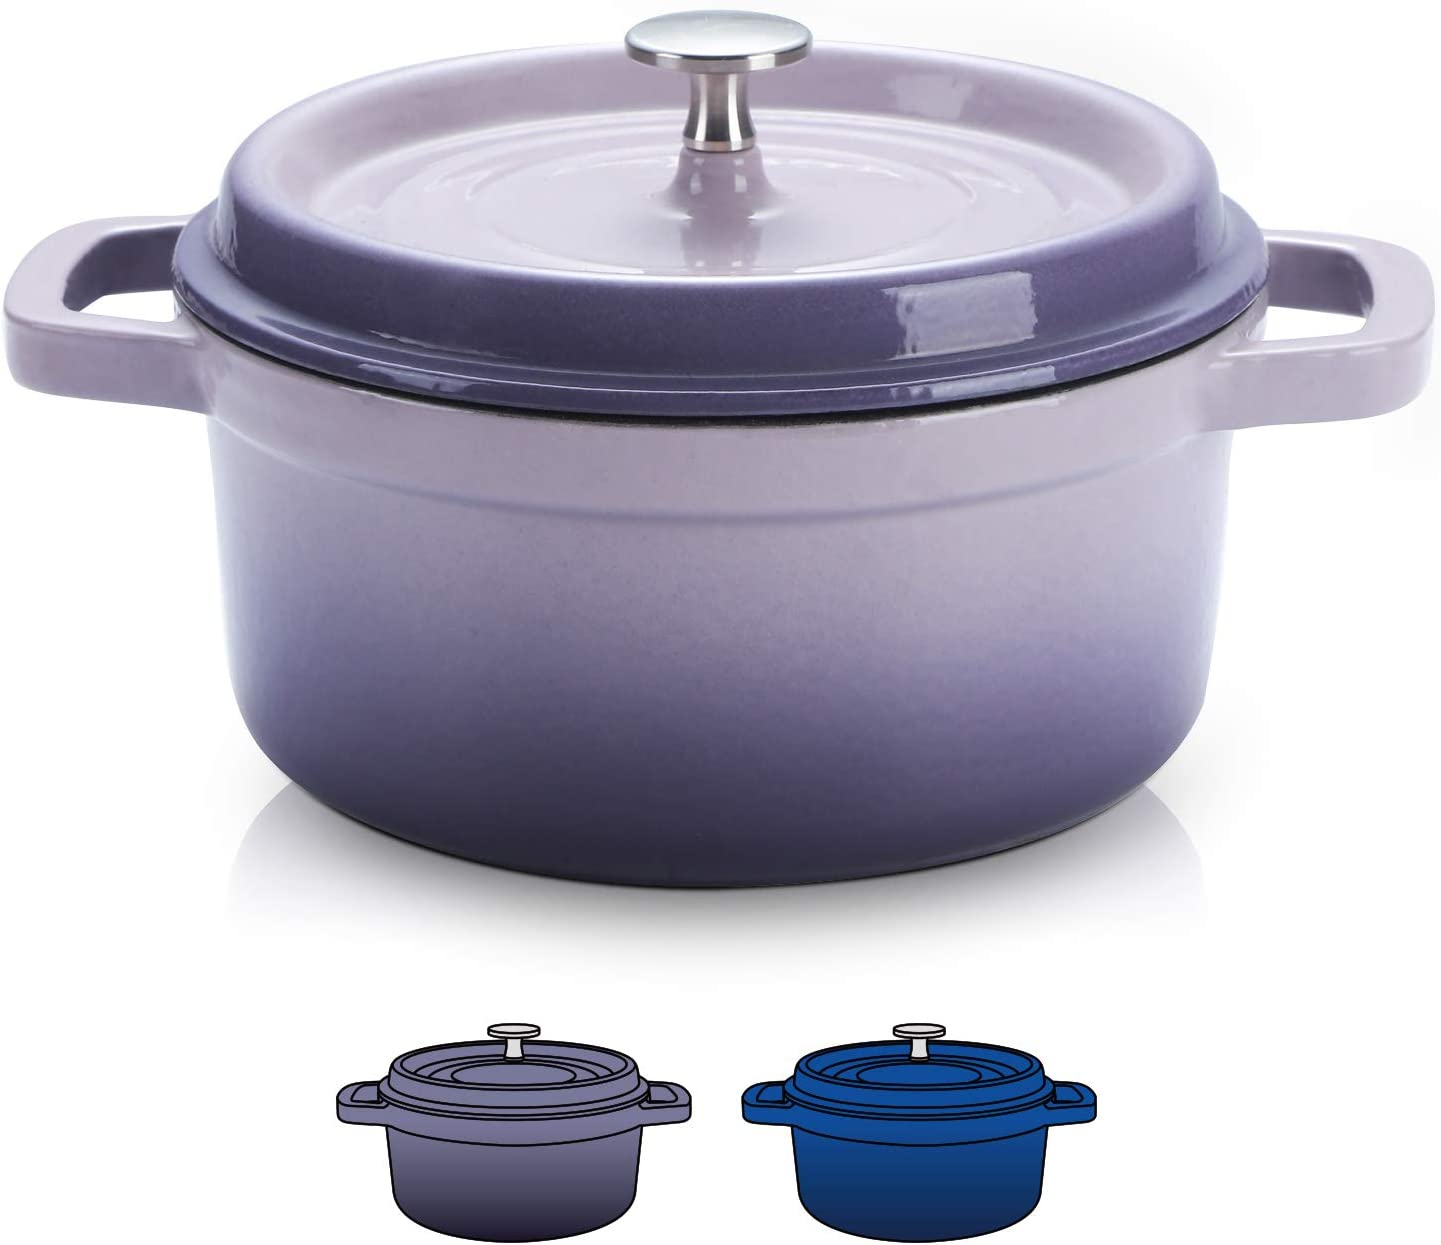 SULIVES Non-Stick Enamel Cast Iron Dutch Oven Pot with Lid Suitable for bread baking use on gas electric oven 5 Quart for 4-6 people(Purple)